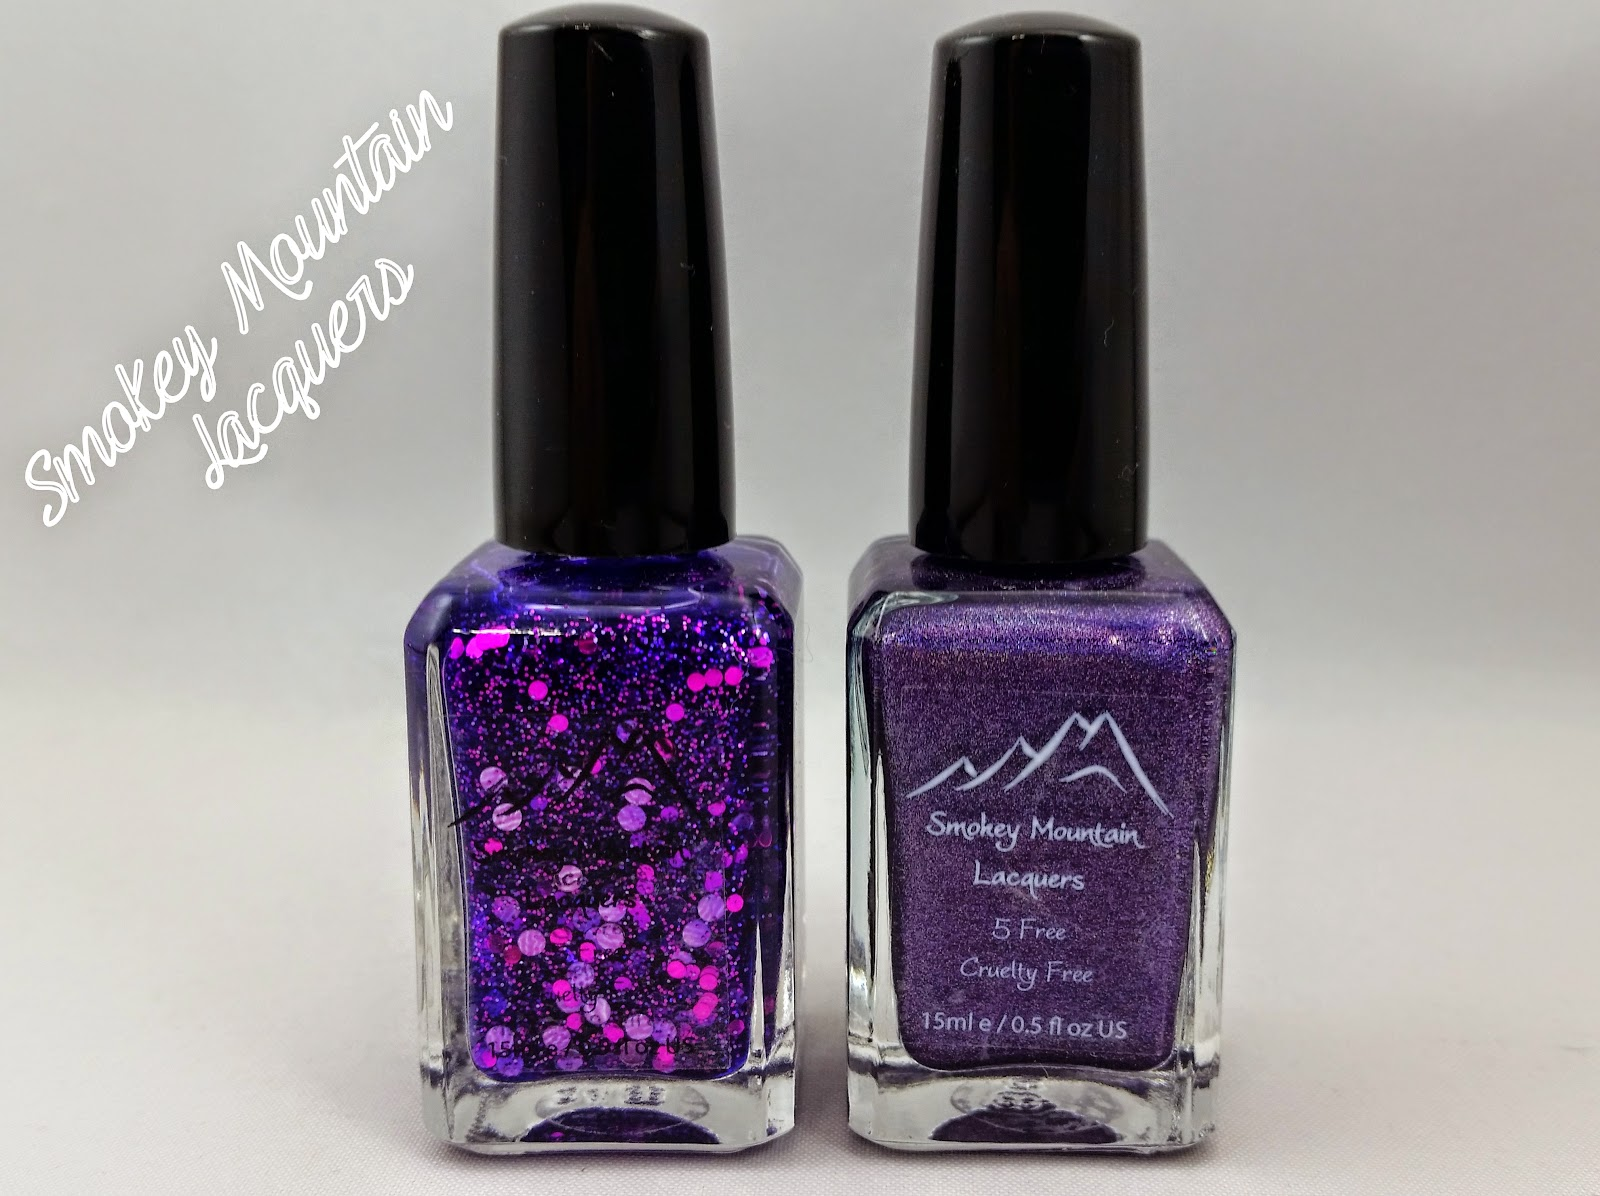 smokey mountain lacquers nail polish